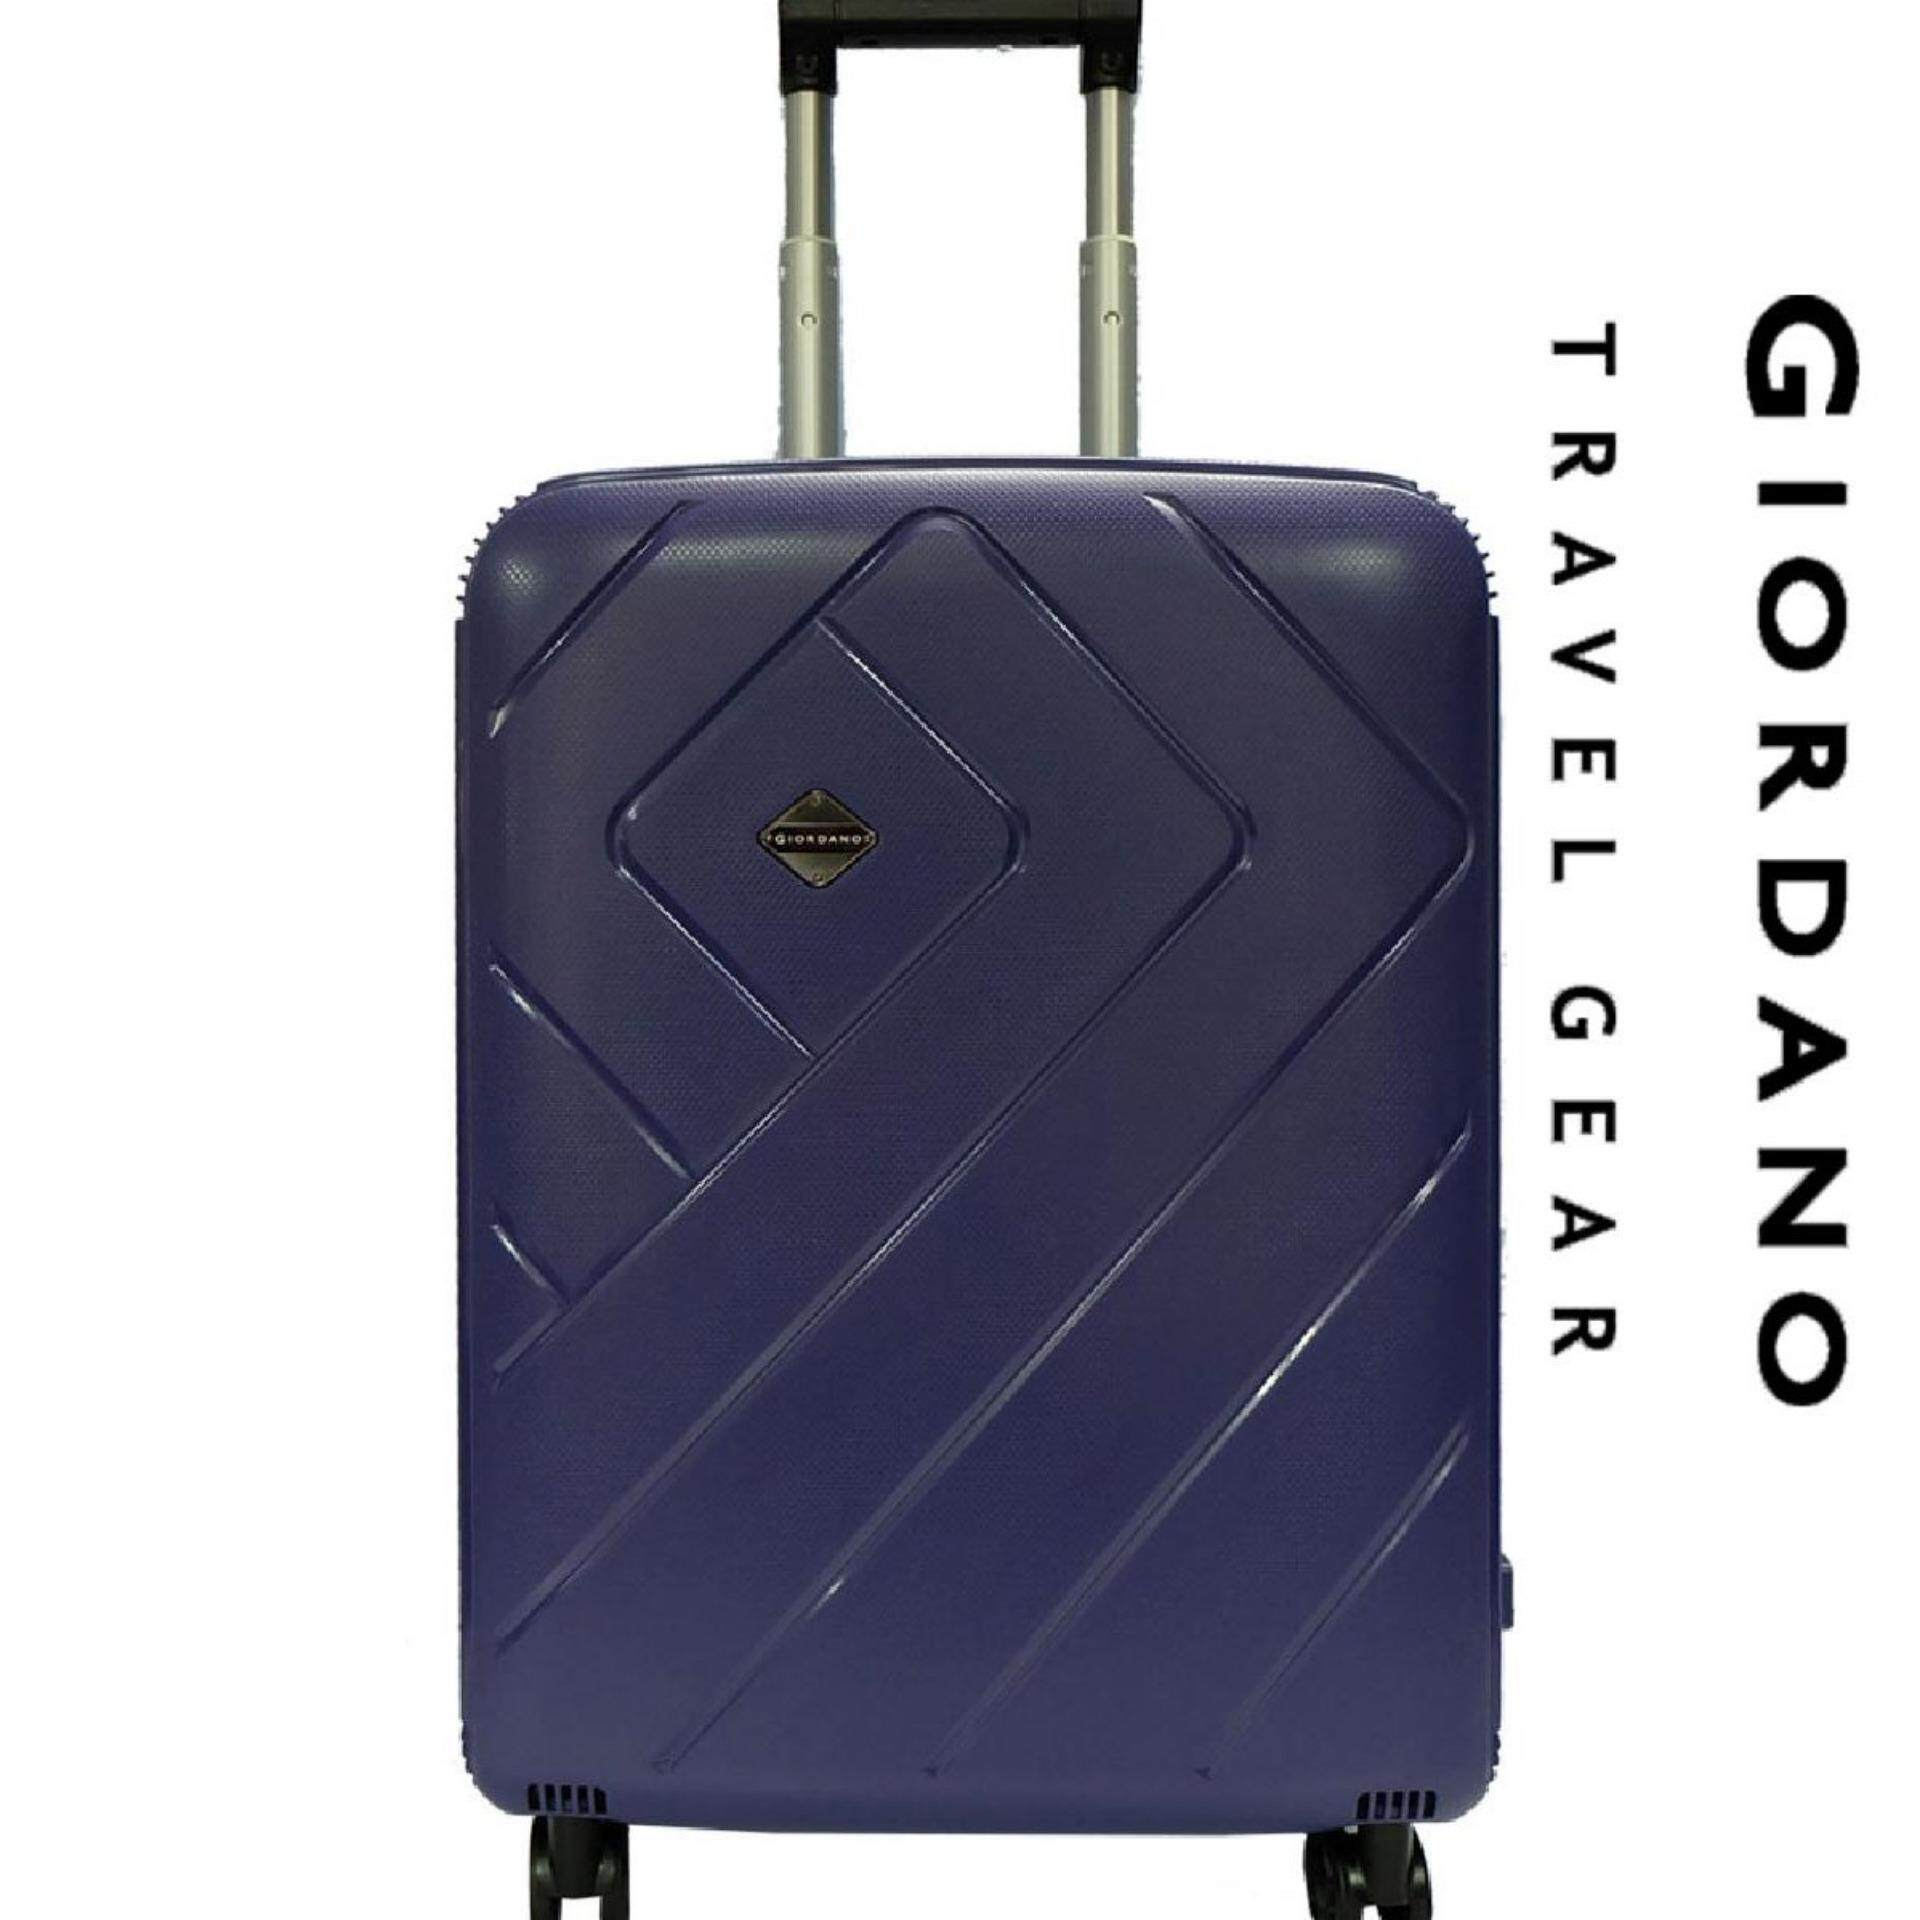 Polypac Produk Terbaru Phillipe Joordan North Tas Backpack Wanita Hijau Canvas New Giordano Ga9600 20 Inch Unbreakable Pp Hard Cases Trolley With Clip Lock Navy